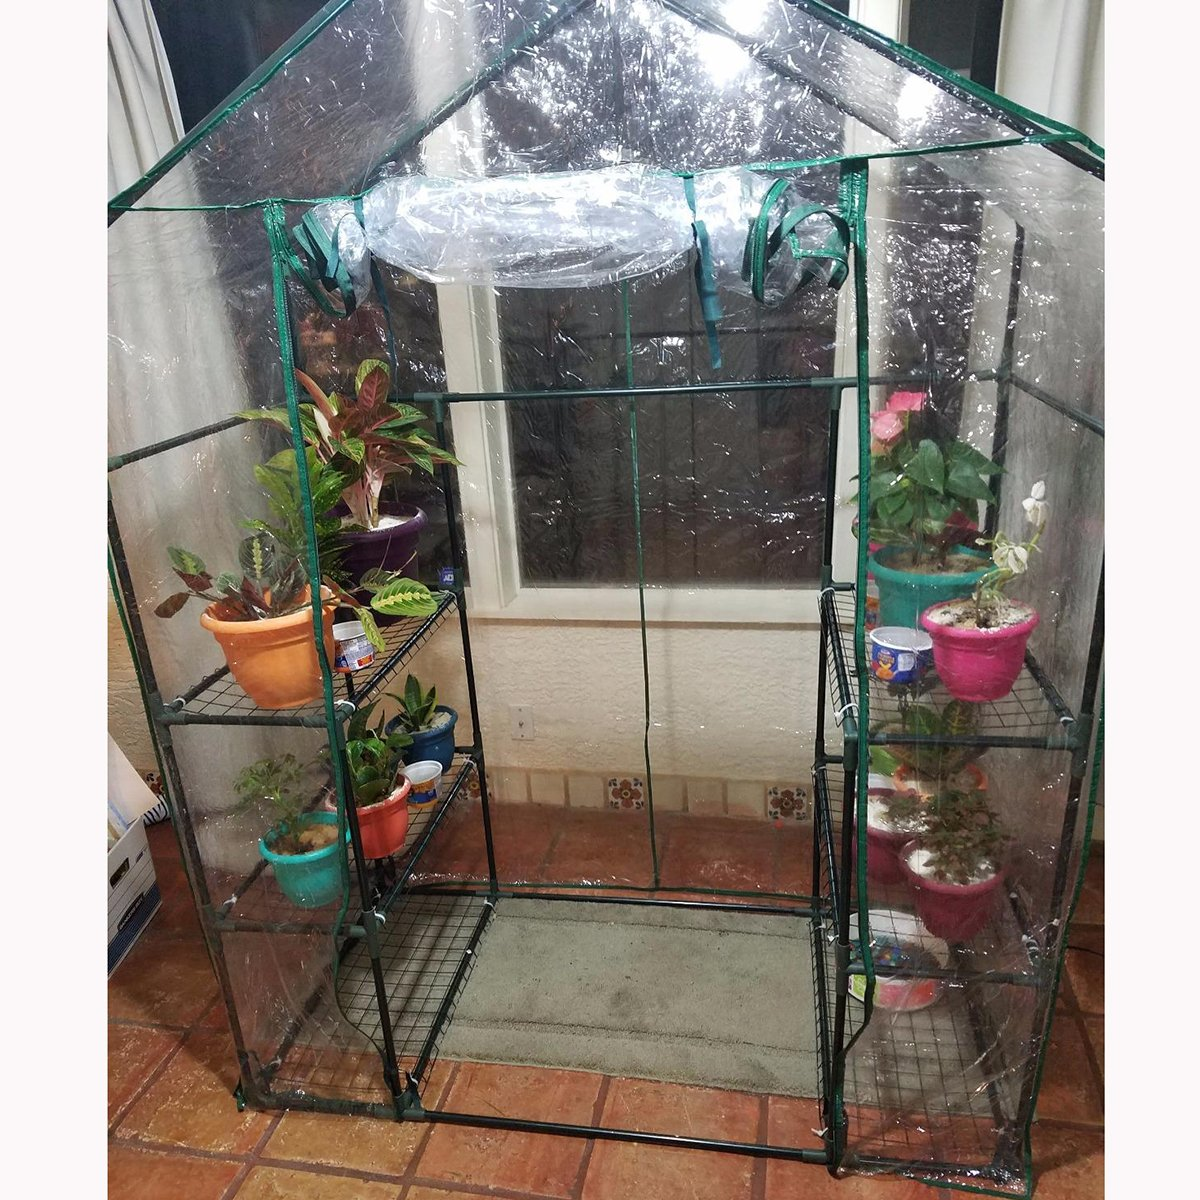 Quictent Greenhouse Mini Walk-in 3 tiers 6 shelves 102lbs Max Weight Capacity Portable Plant Garden Outdoor Green House 56''x29''x77'' by Quictent (Image #8)